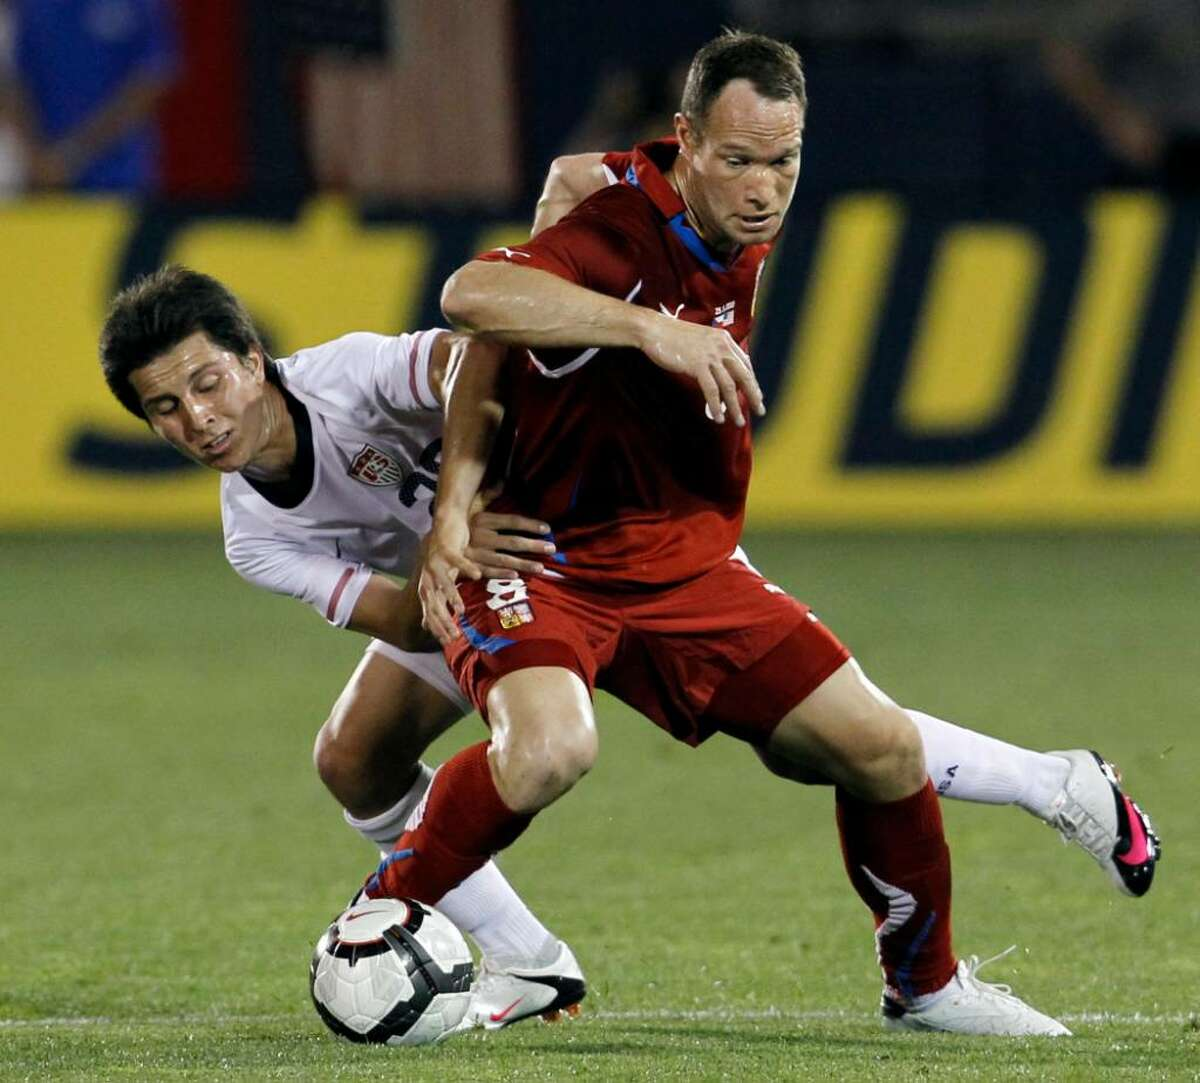 United States' Jose Torres, left, attempts to hold Czech Republic's Jan Polak (8) from controlling the ball during the first half of an international friendly soccer match in East Hartford, Conn., Tuesday, May 25, 2010. Czech Republic won 4-2.